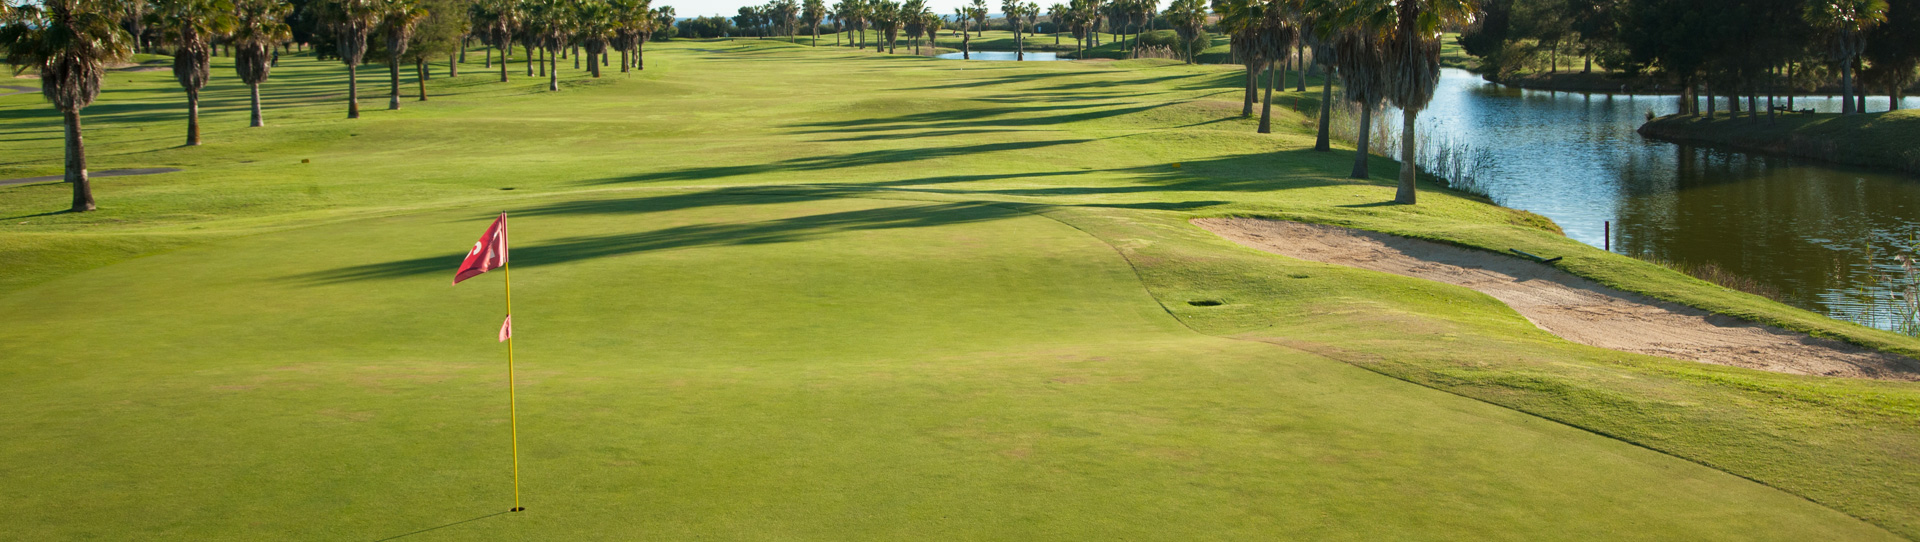 Salgados Golf Course - Photo 3